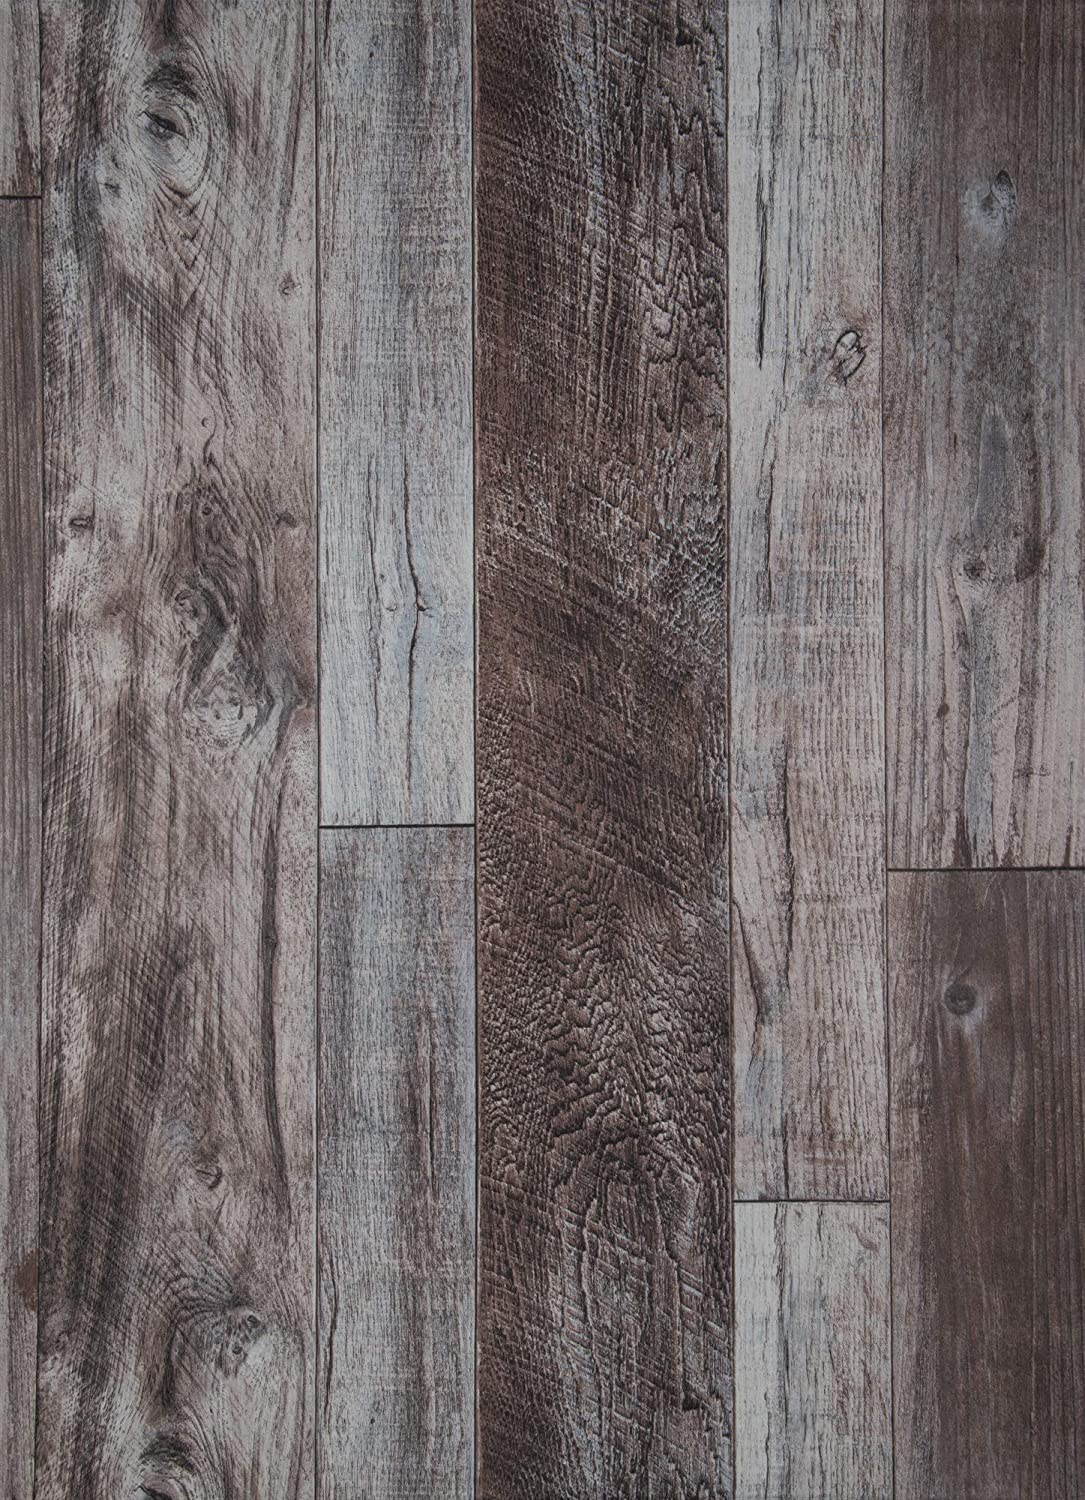 17.7in×236in Wood Wallpaper Peel and Stick Self Adhesive Wooden Wall Paper Home Decorative Wood Plank No Glue Left When Removed